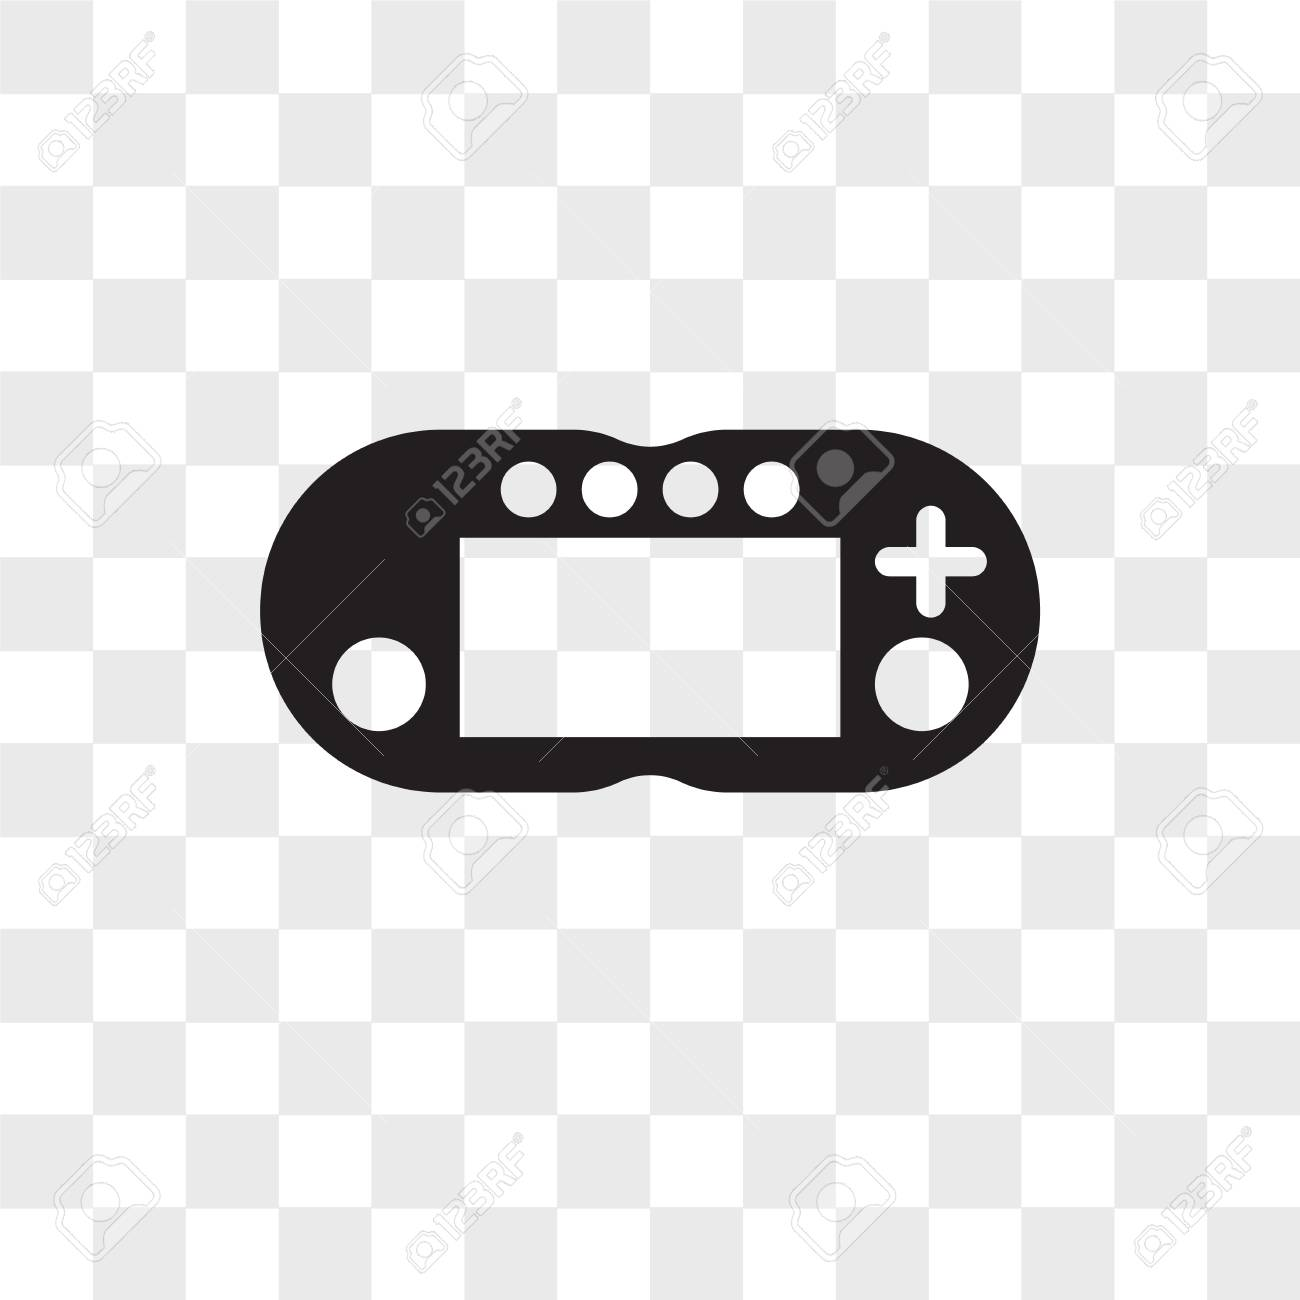 Video Games Vector Icon Isolated On Transparent Background Video Royalty Free Cliparts Vectors And Stock Illustration Image 108989710